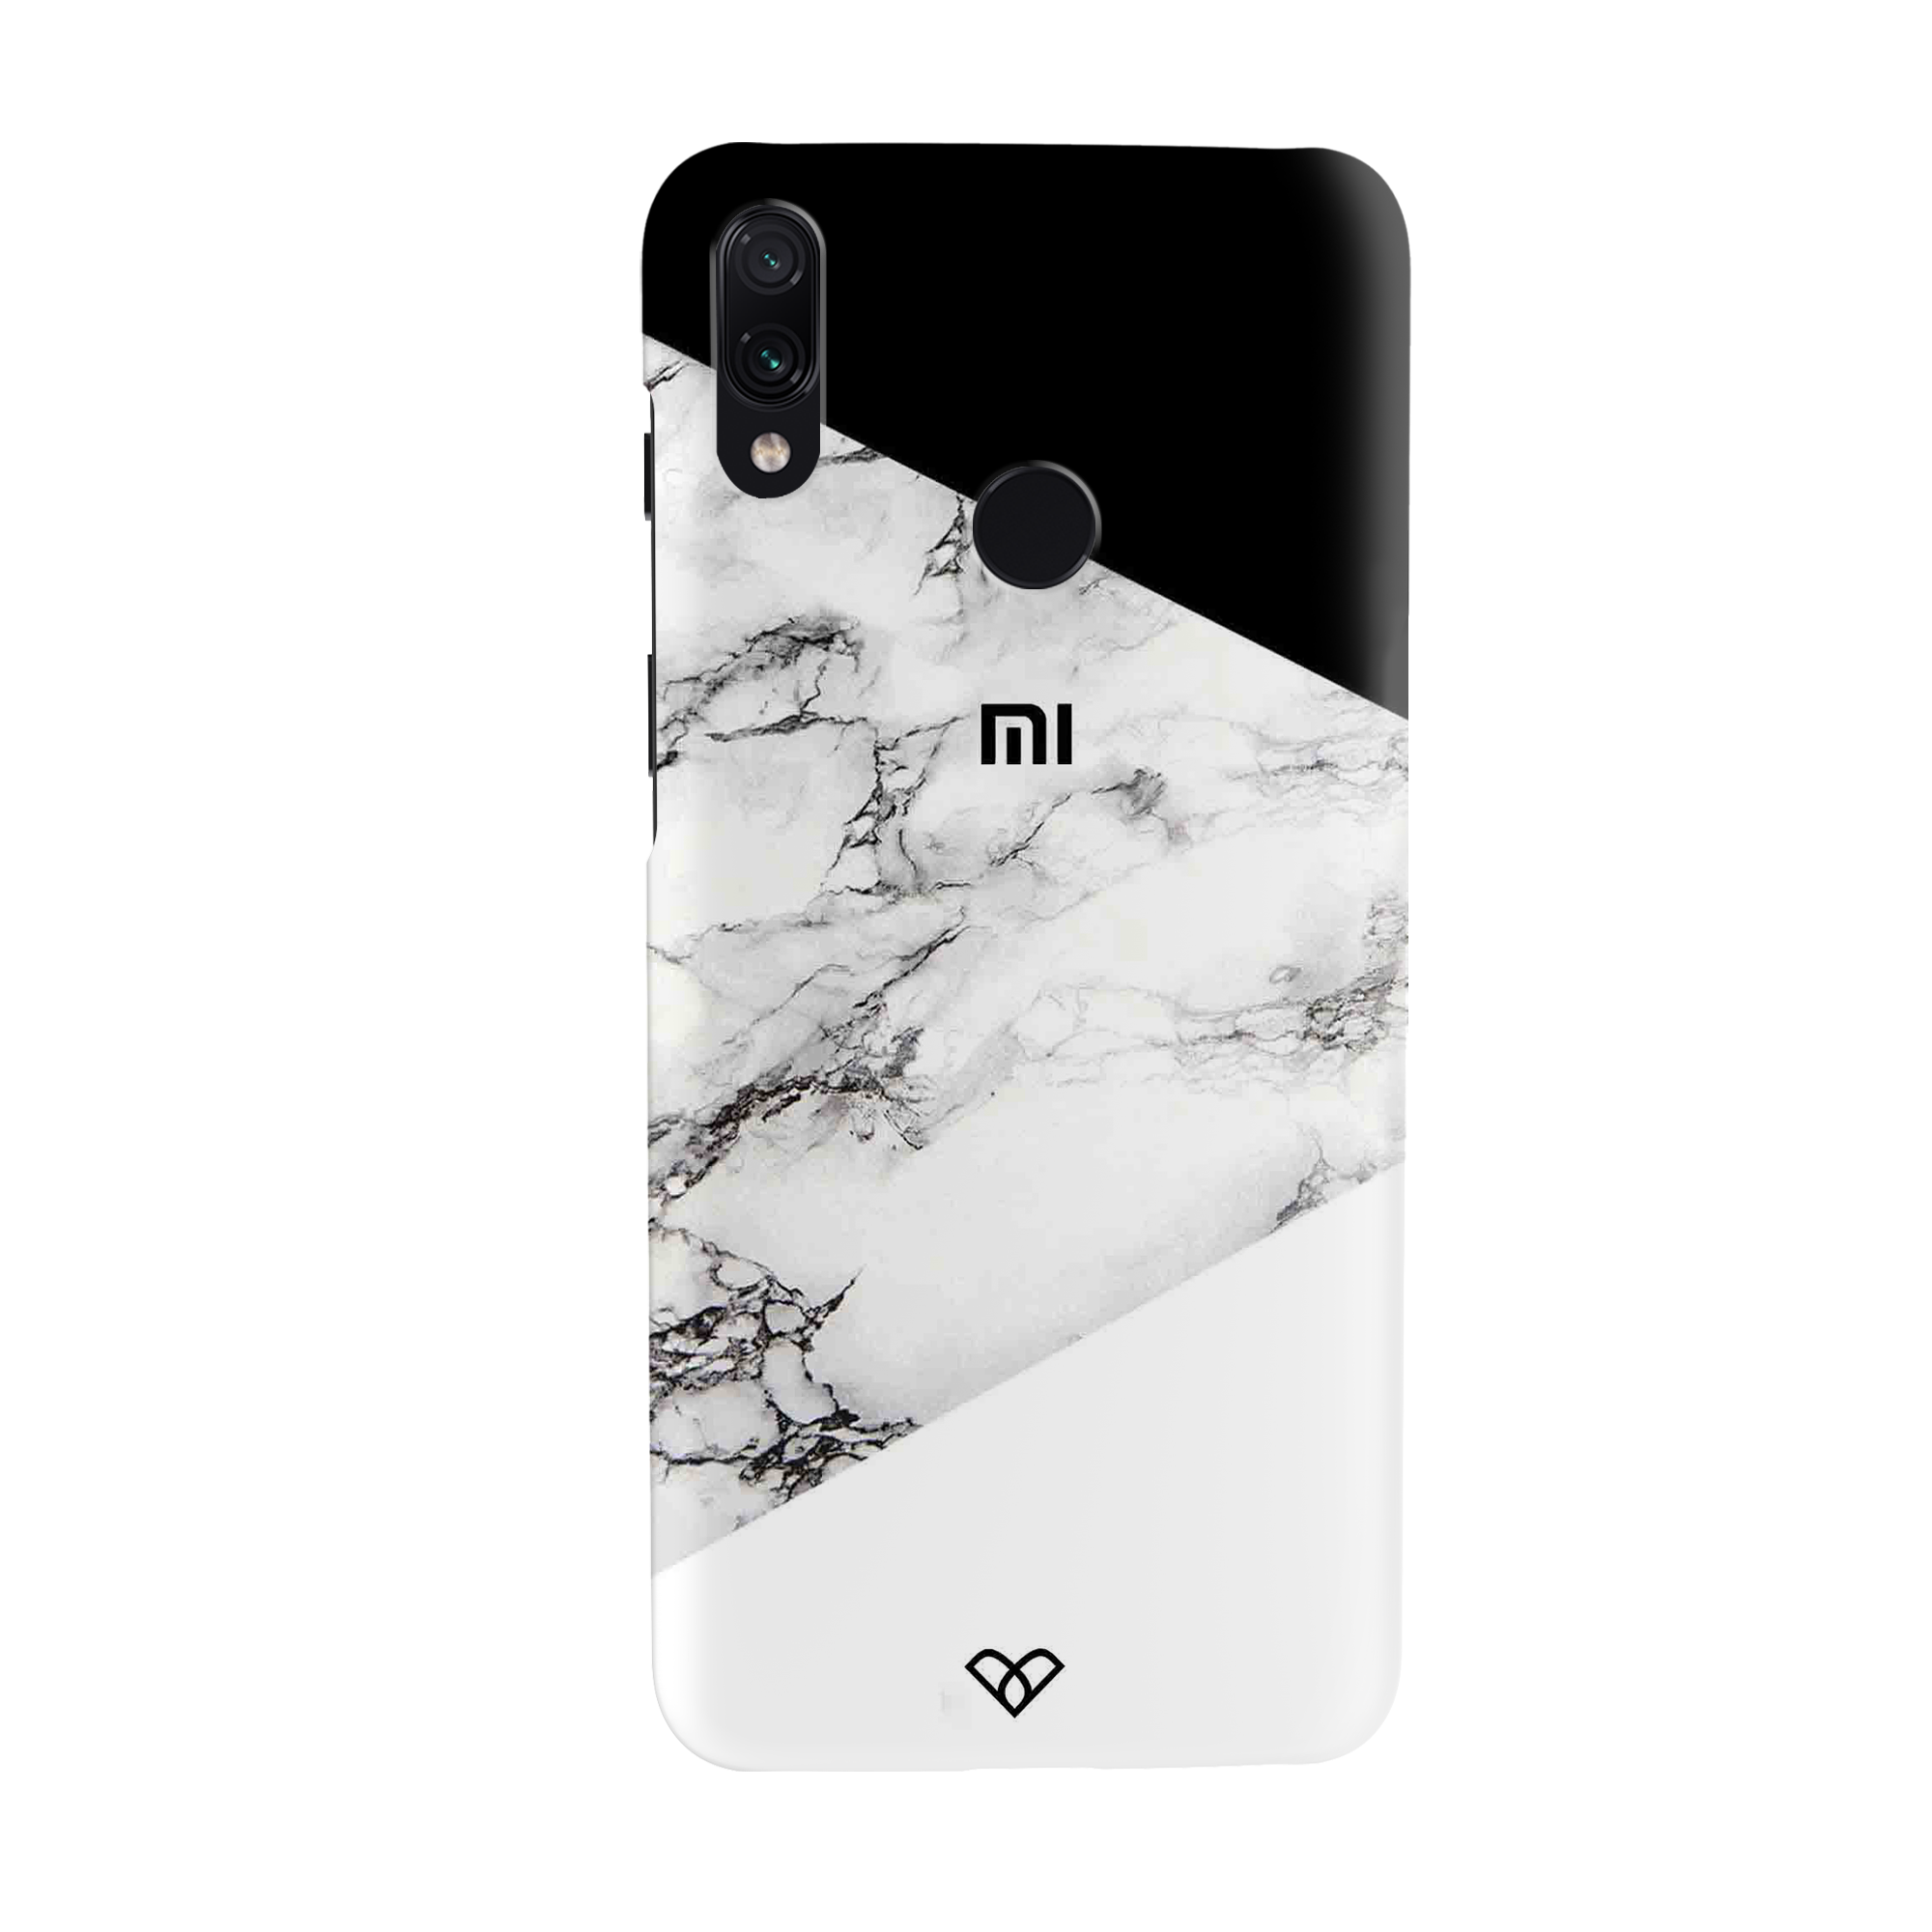 Geometric White Marble Textured Slim Case And Cover For Redmi Note 7 Pro